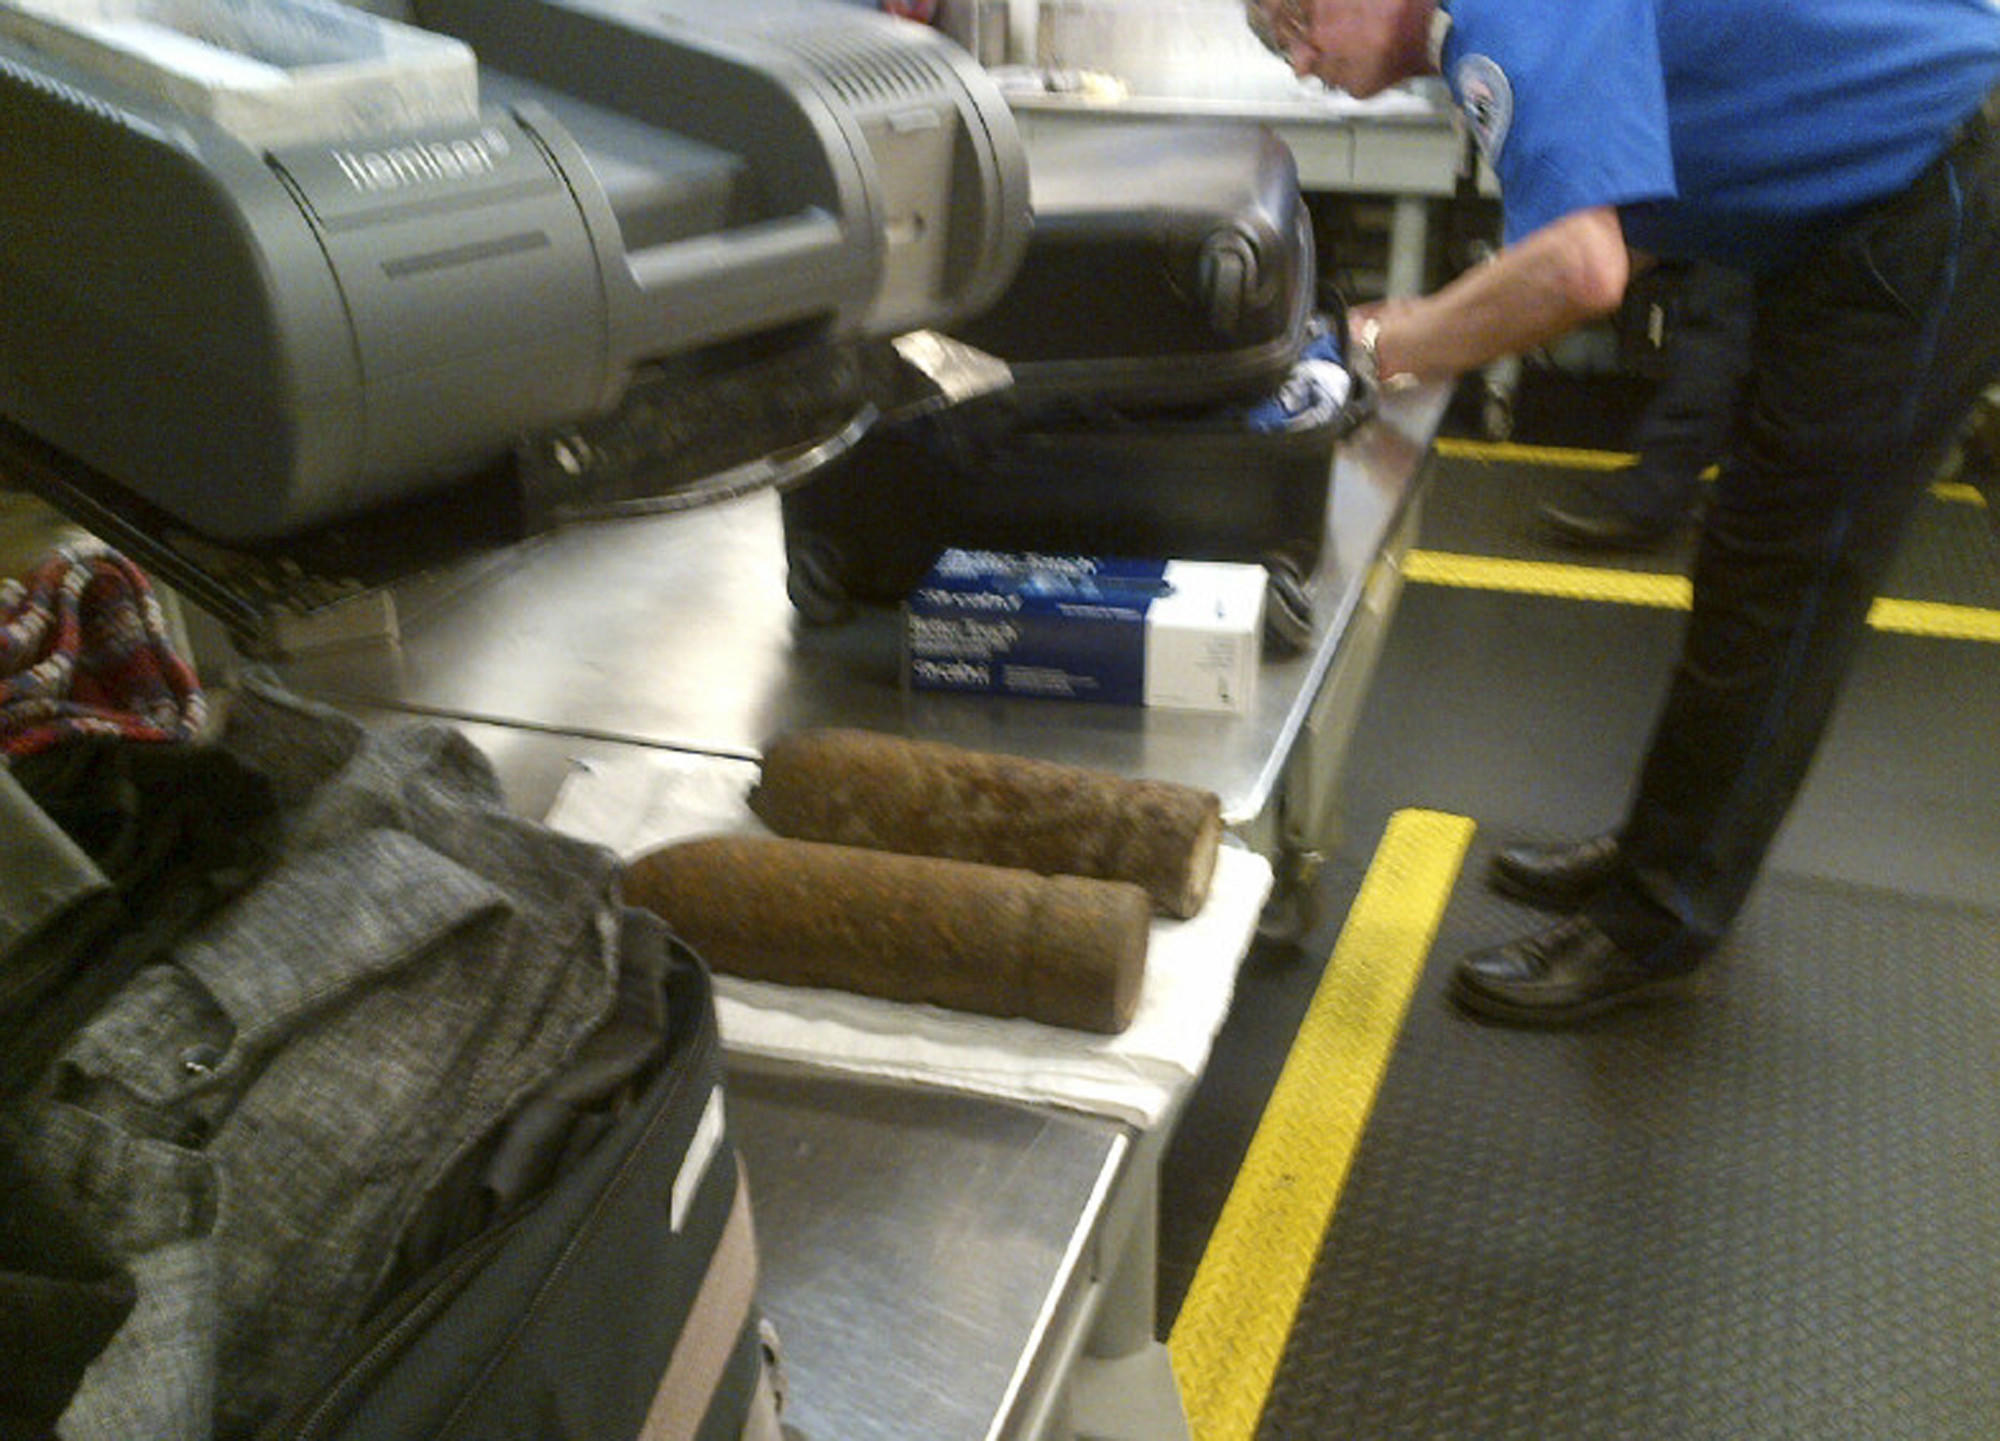 This photo provided by the Transportation Security Administration shows two World War I artillery shells discovered by baggage screeners in checked luggage that arrived on a flight from London at Chicago's O'Hare International Airport.